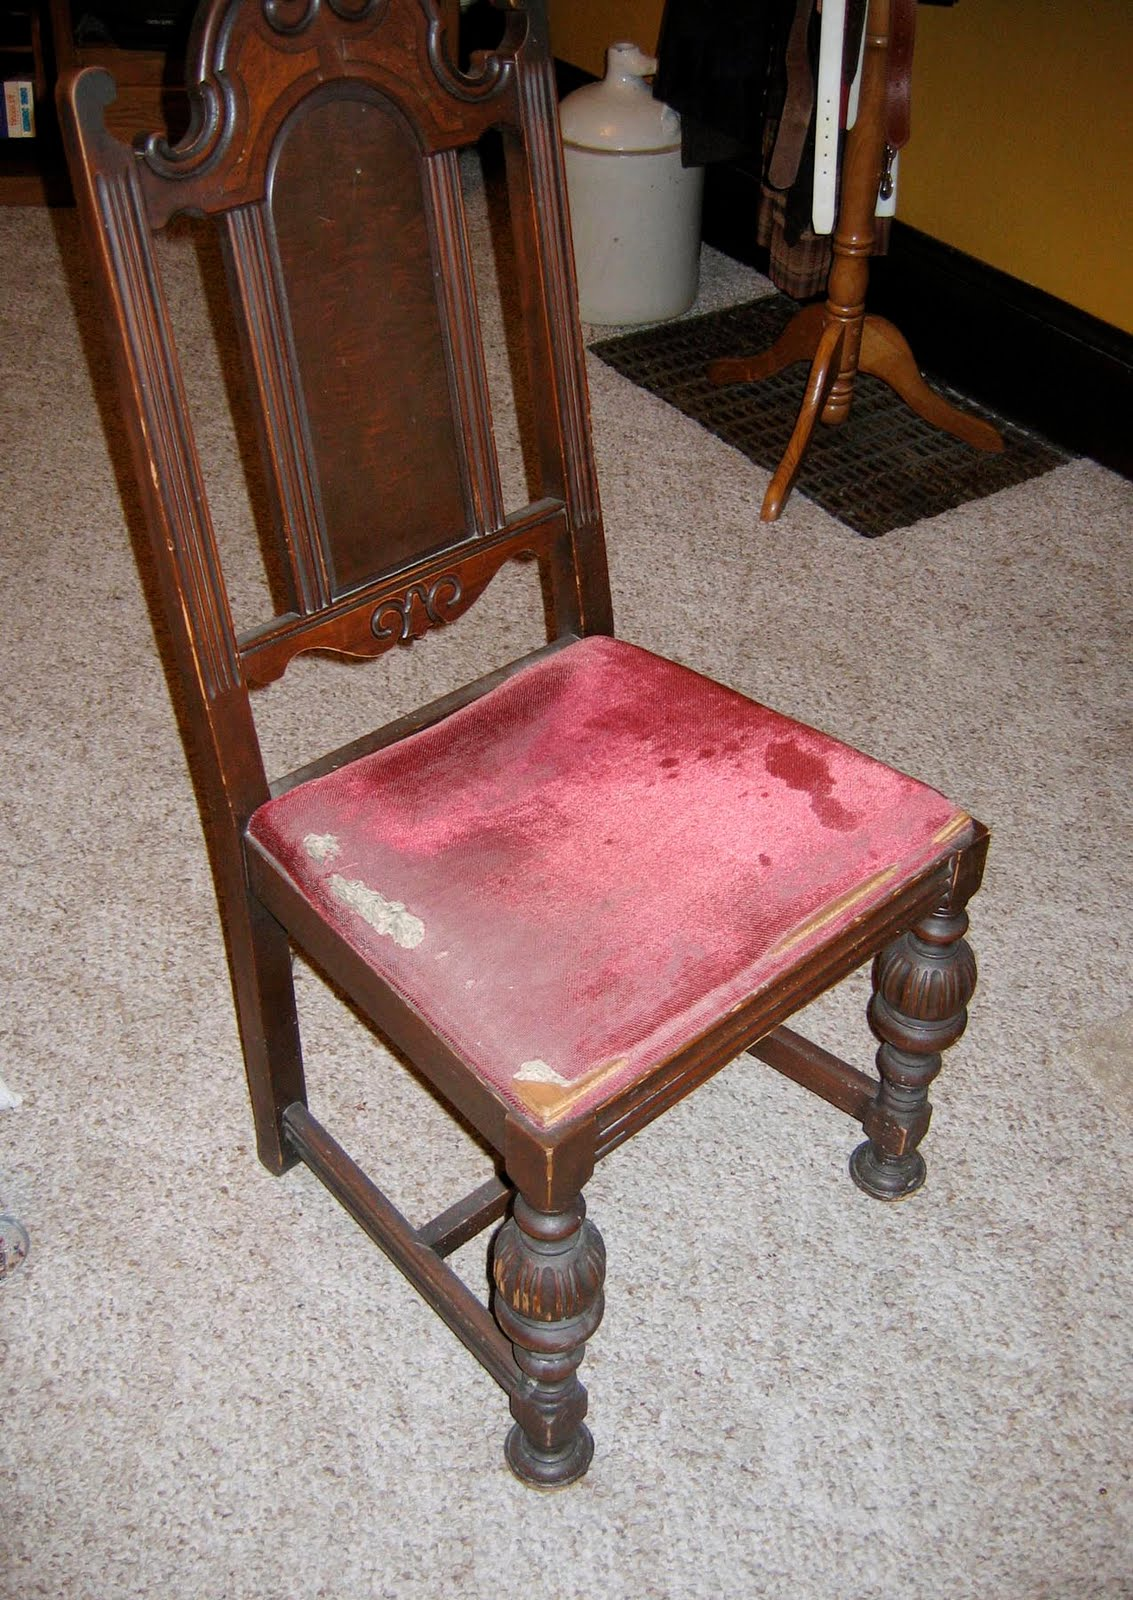 Where To Get Chairs Reupholstered Latt Table And How Reupholster A Chair Seat